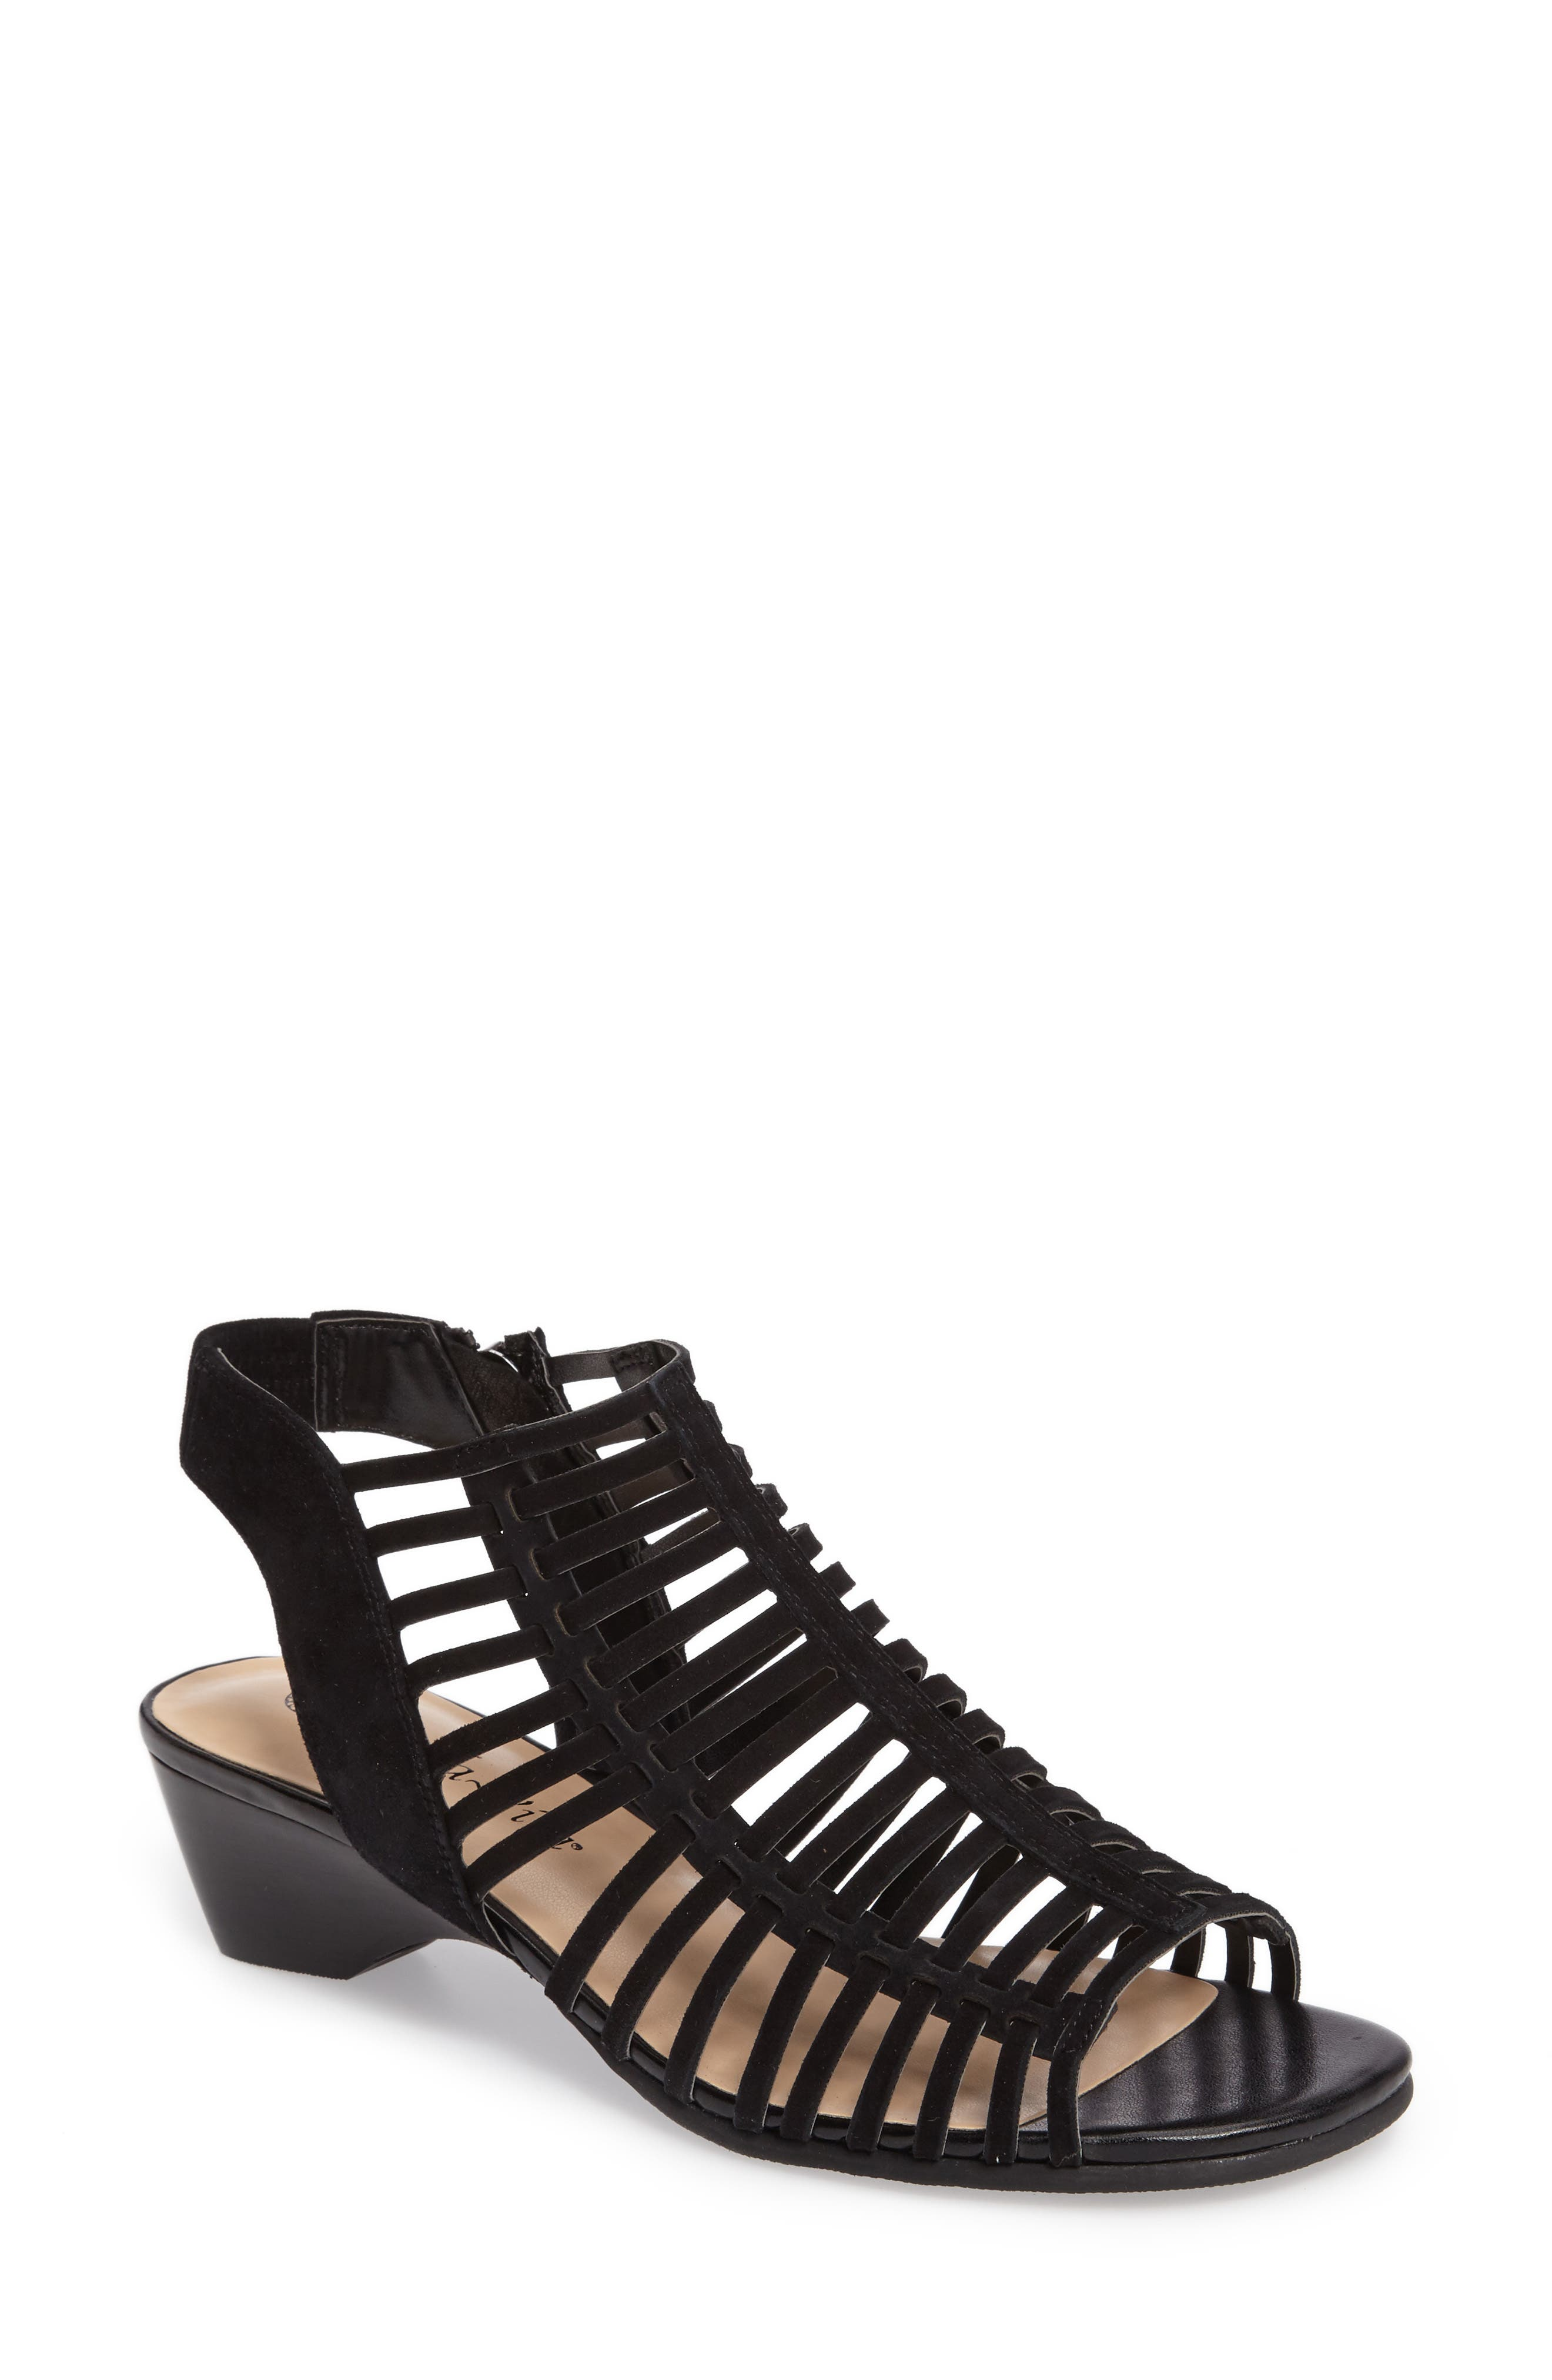 Pacey Cage Sandal,                         Main,                         color, BLACK SUEDE